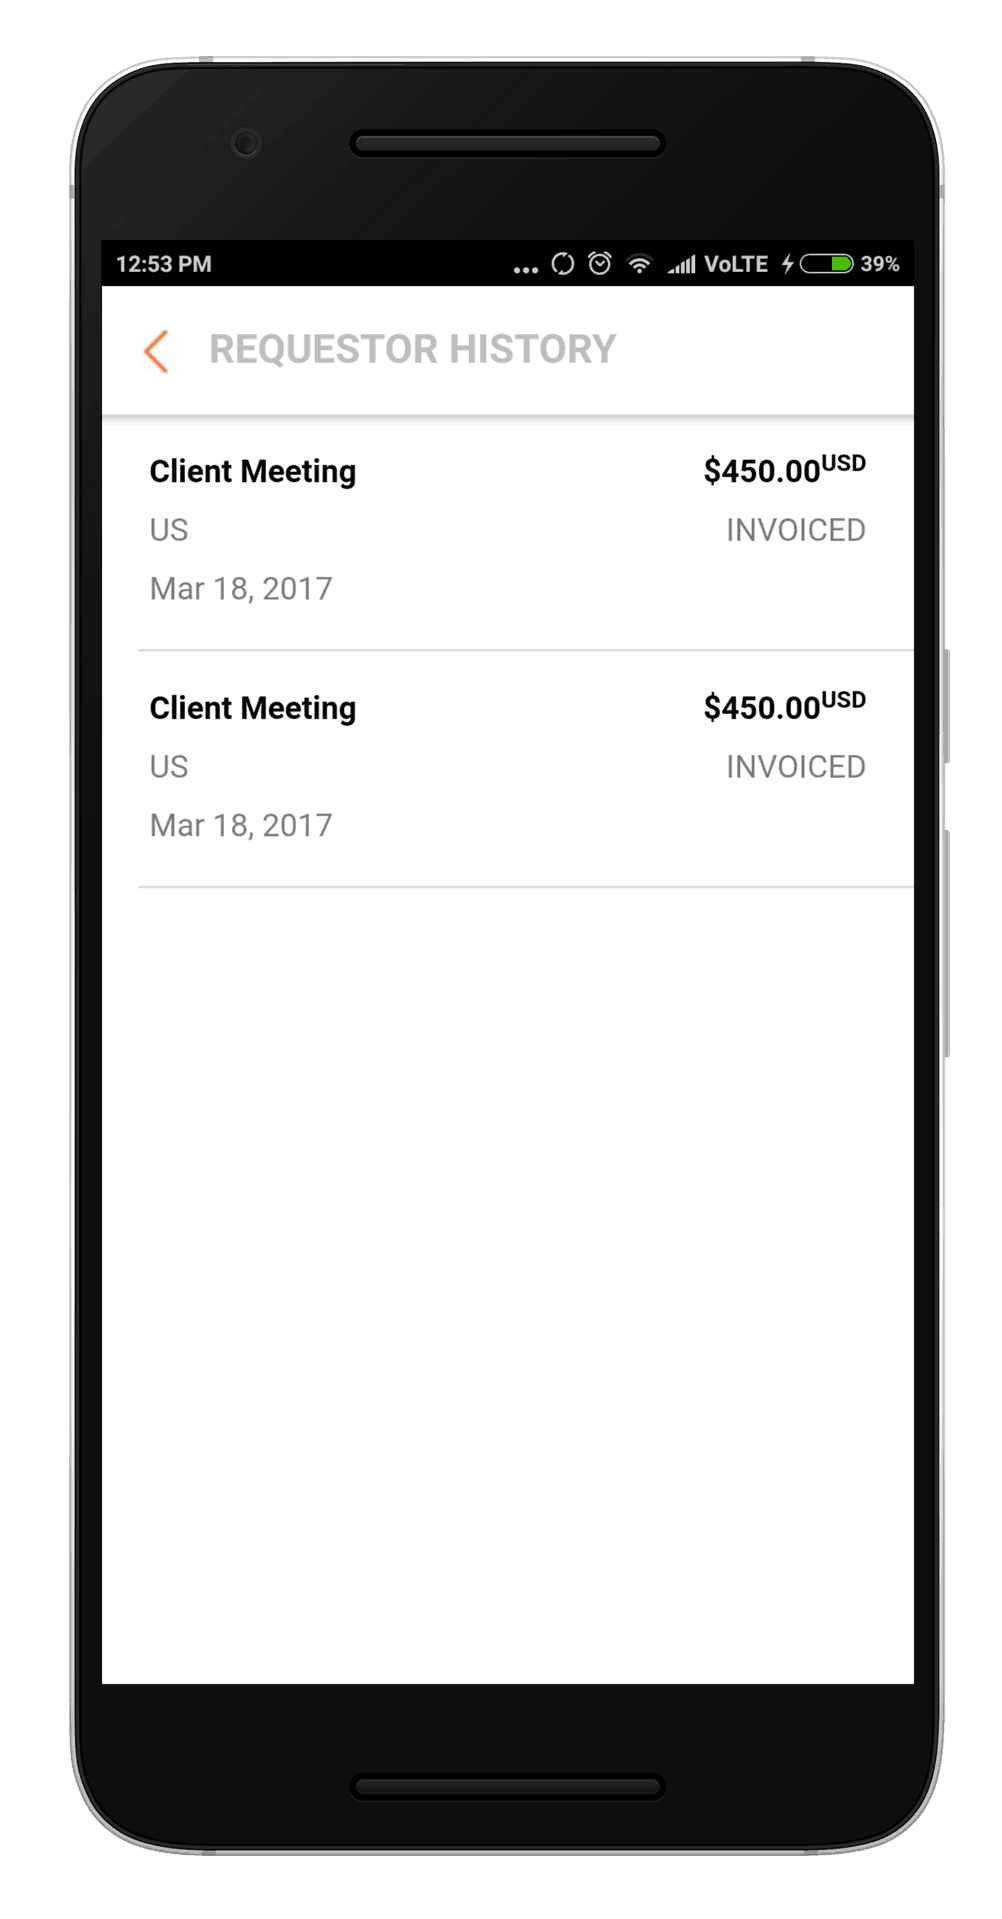 Oracle Mobile Expenses Approval mobile app for expense management